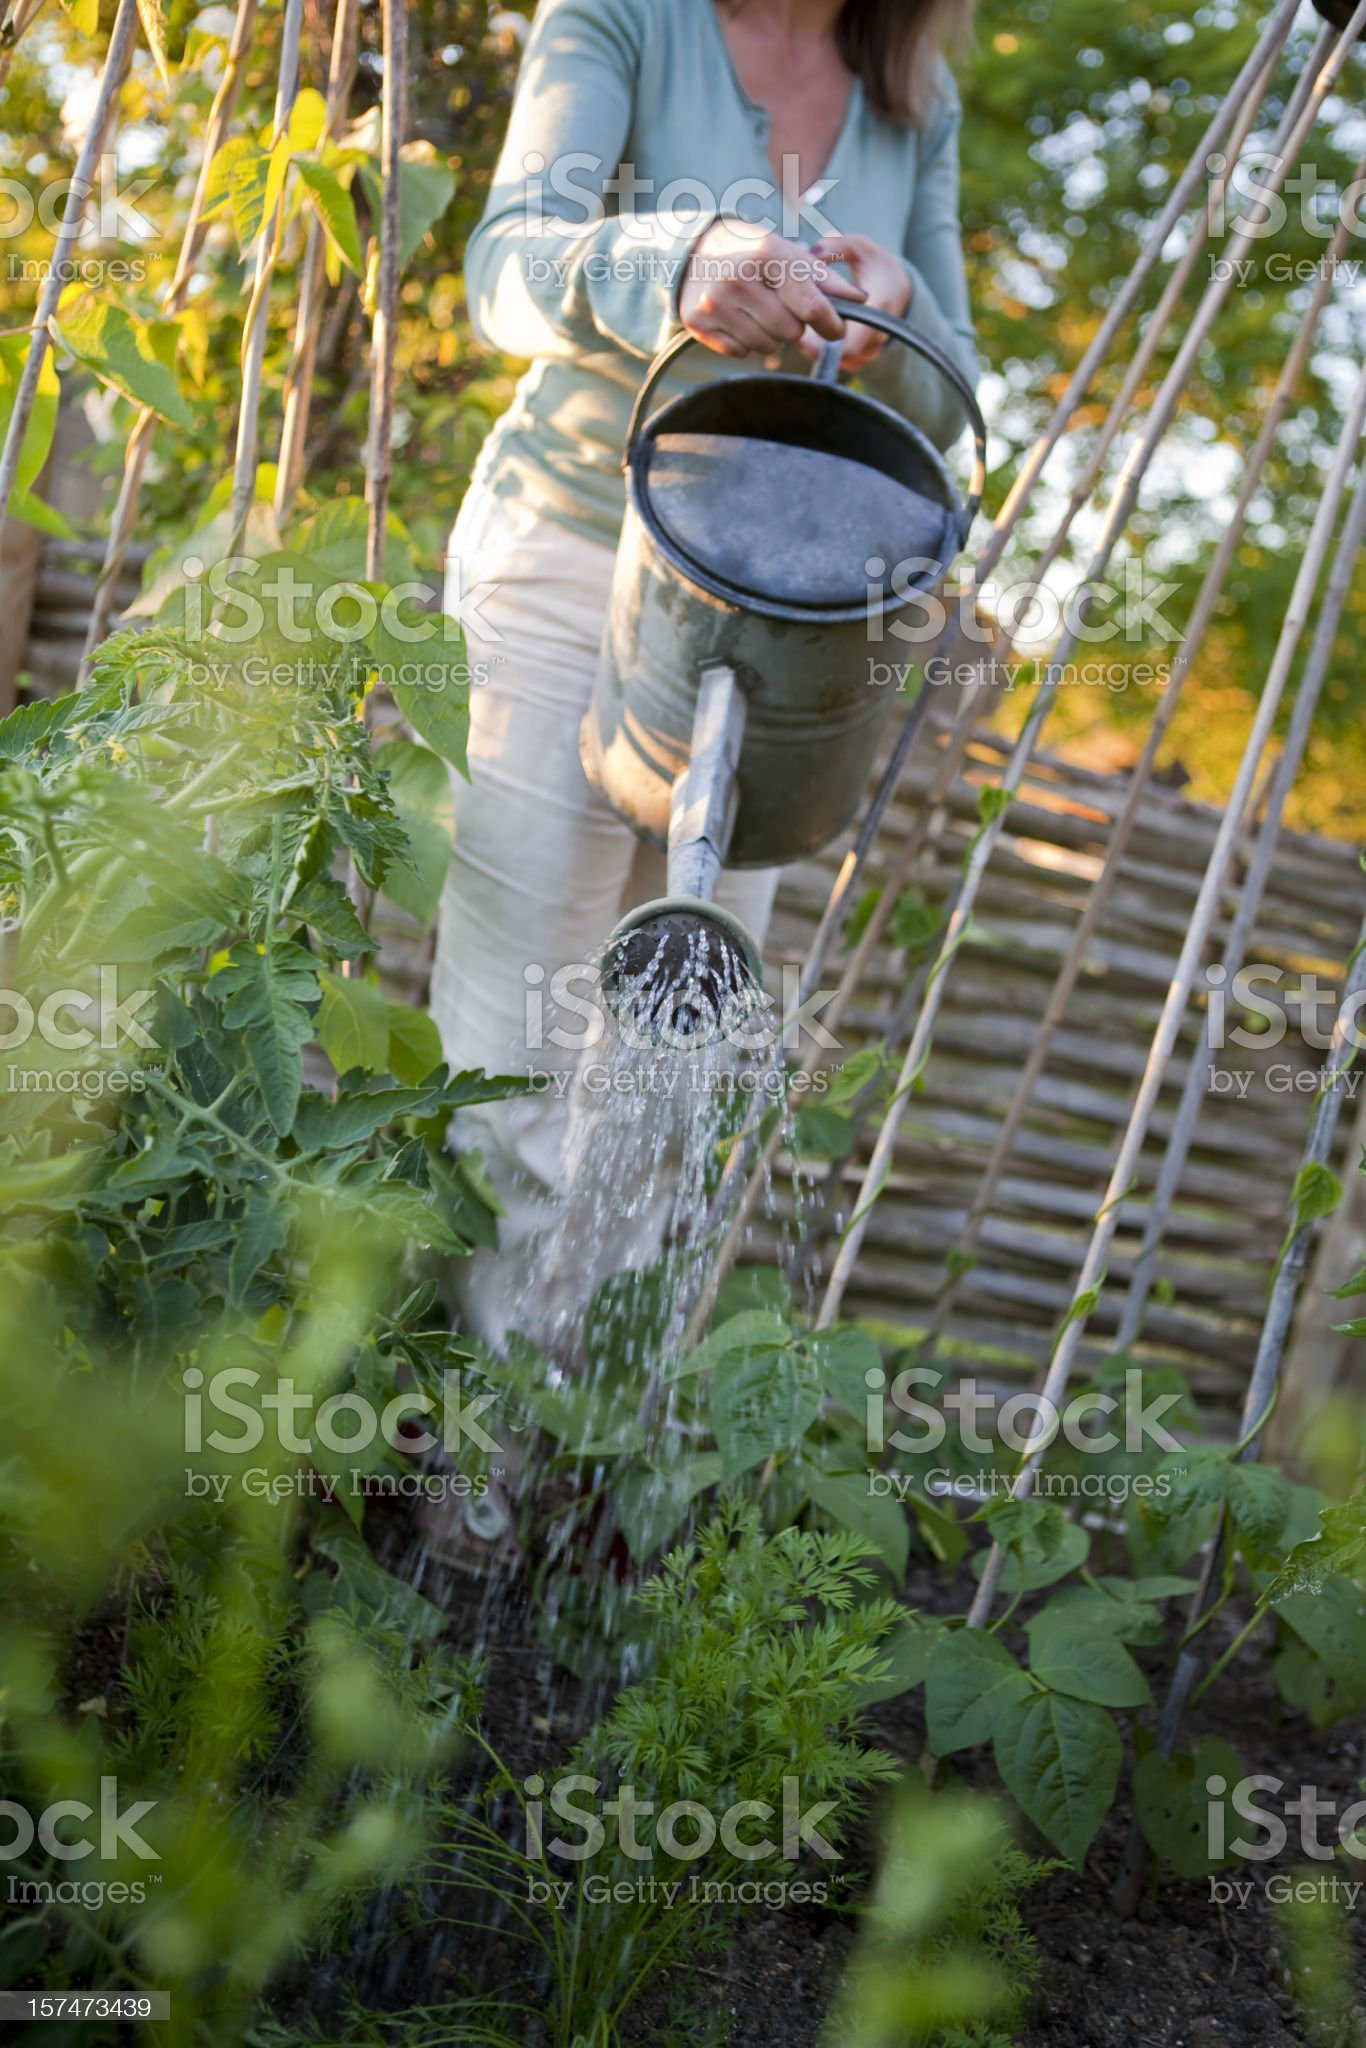 Watering the Vegetable Garden royalty-free stock photo